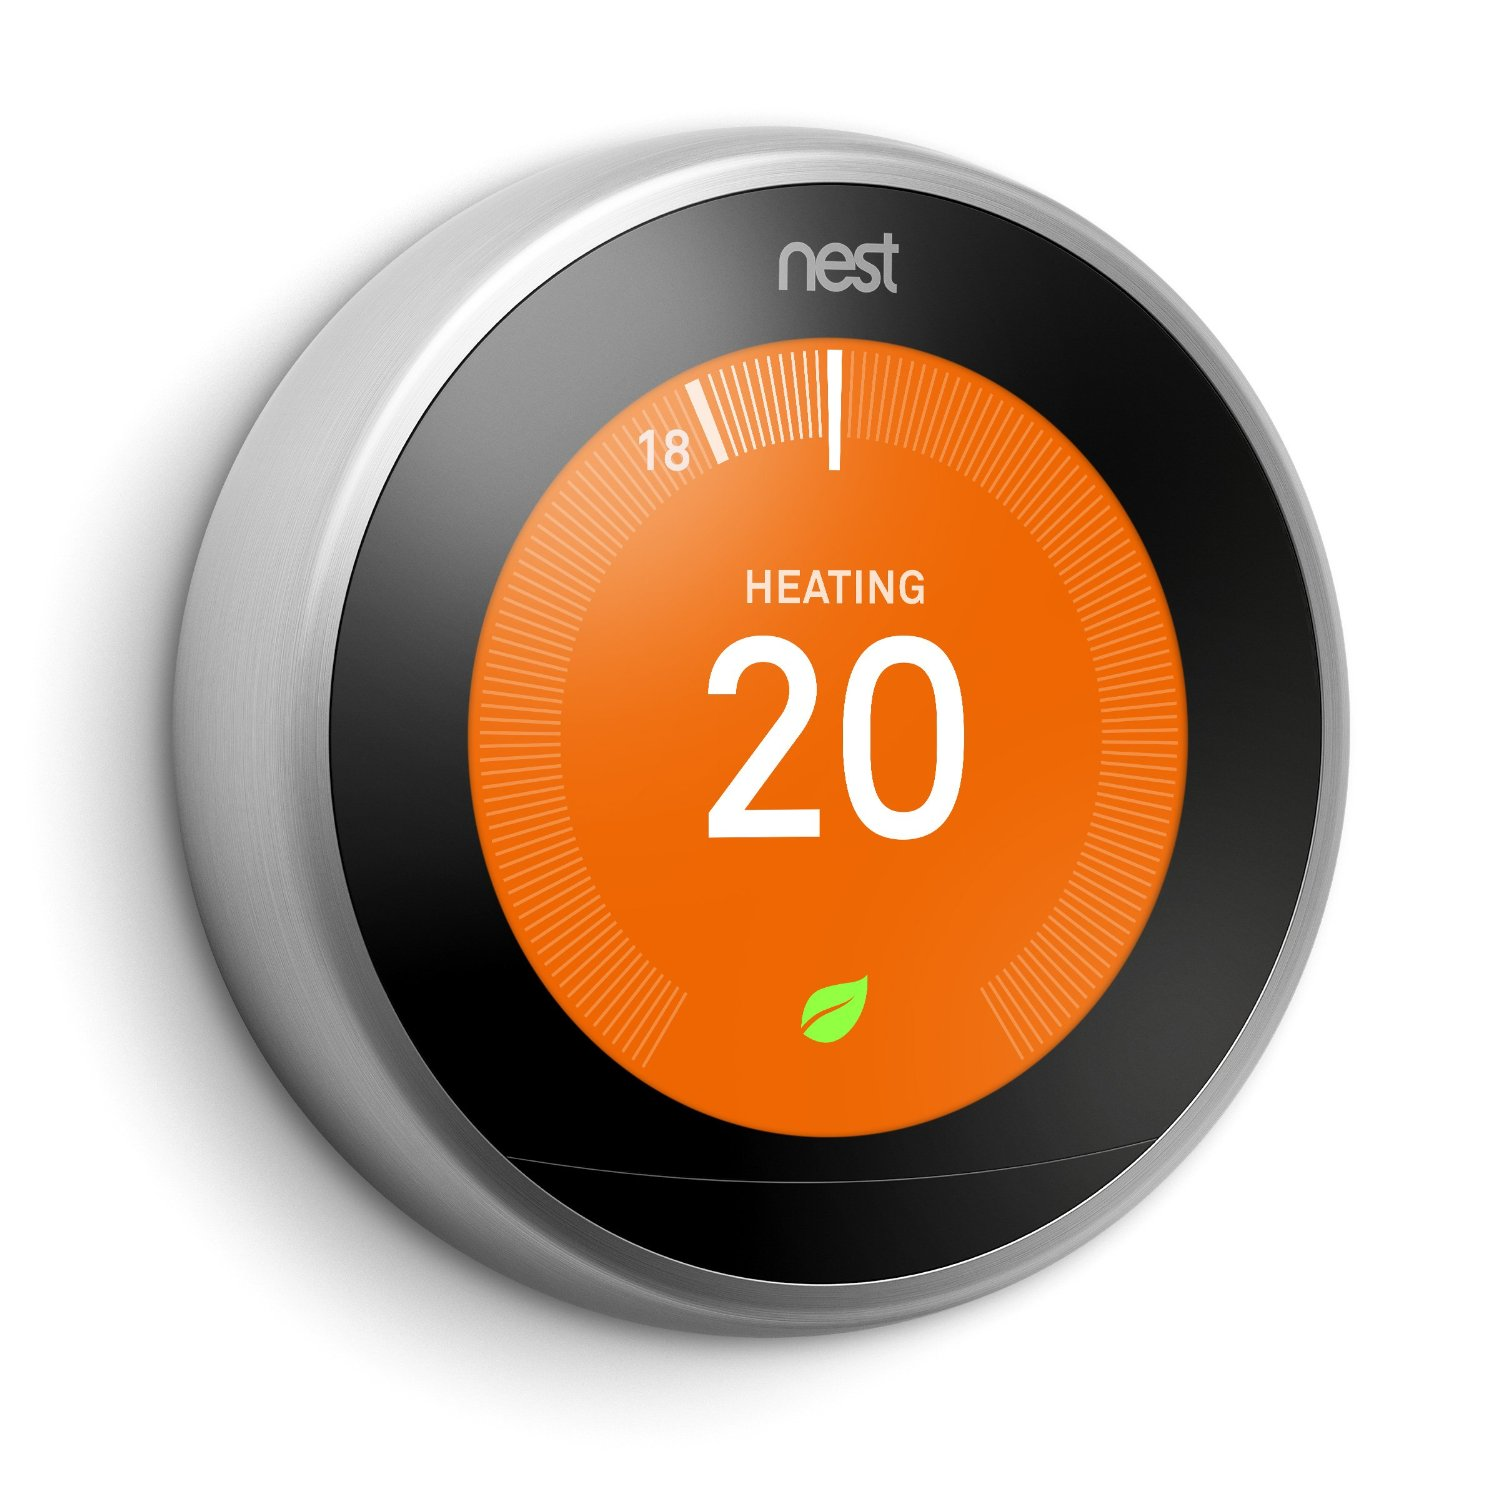 uk gets 3rd gen nest thermostat with hot water control automated, block diagram, nest 3rd gen y plan wiring